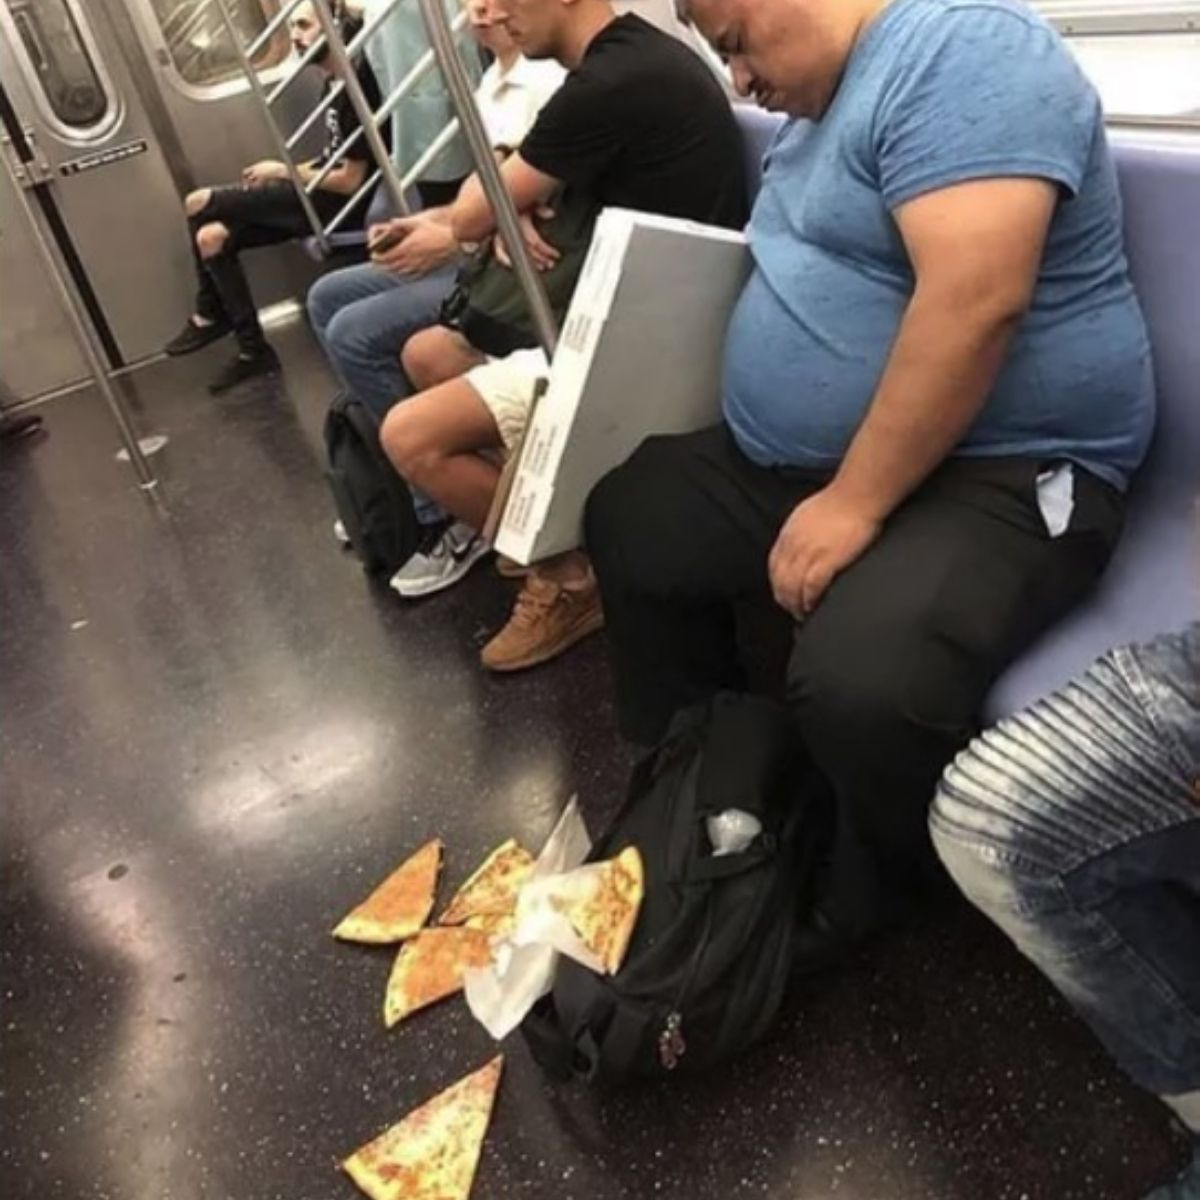 pizza nightmare on a subway